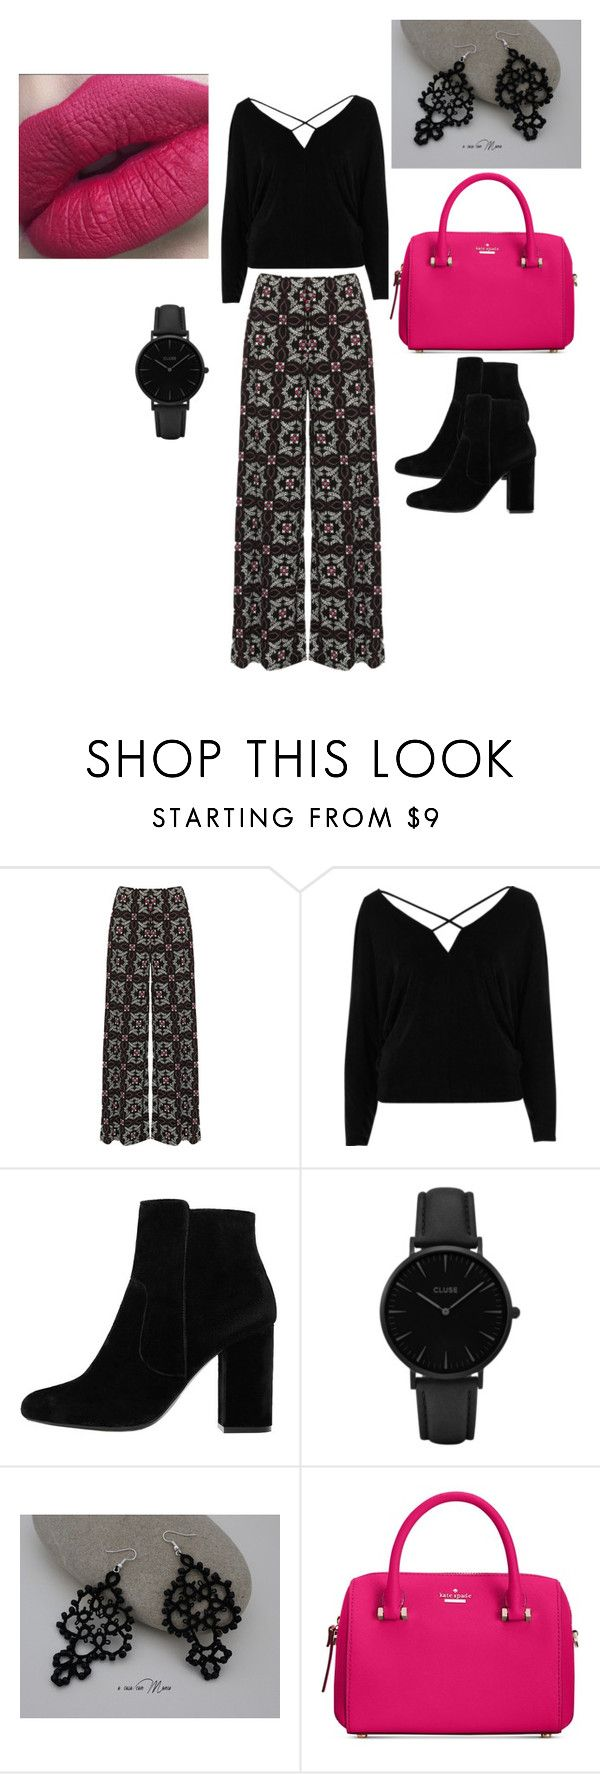 """""""Art Gallery"""" by tamara-jenkins-jackson ❤ liked on Polyvore featuring WearAll, River Island, MANGO, CLUSE and Kate Spade"""